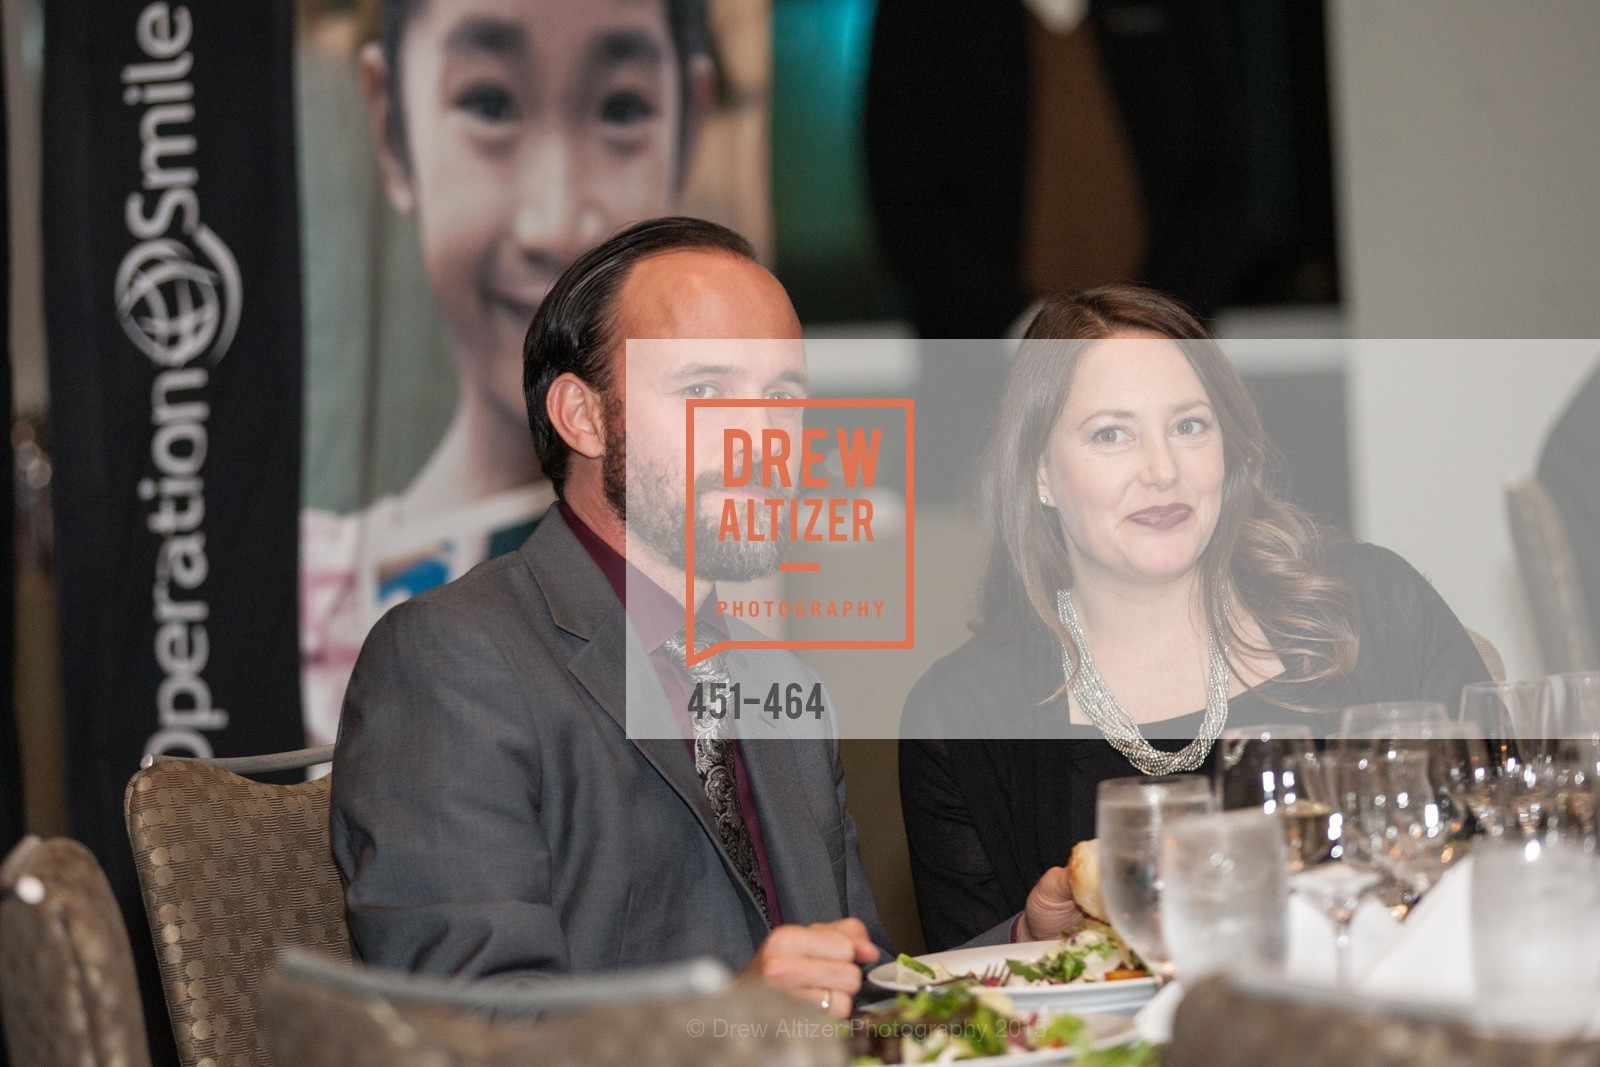 Jakub Mosur, Erin Lubin, Operation Smile Presents THE SAN FRANCISCO 2015 SMILE GALA, InterContinental Hotel, November 7th, 2015,Drew Altizer, Drew Altizer Photography, full-service agency, private events, San Francisco photographer, photographer california